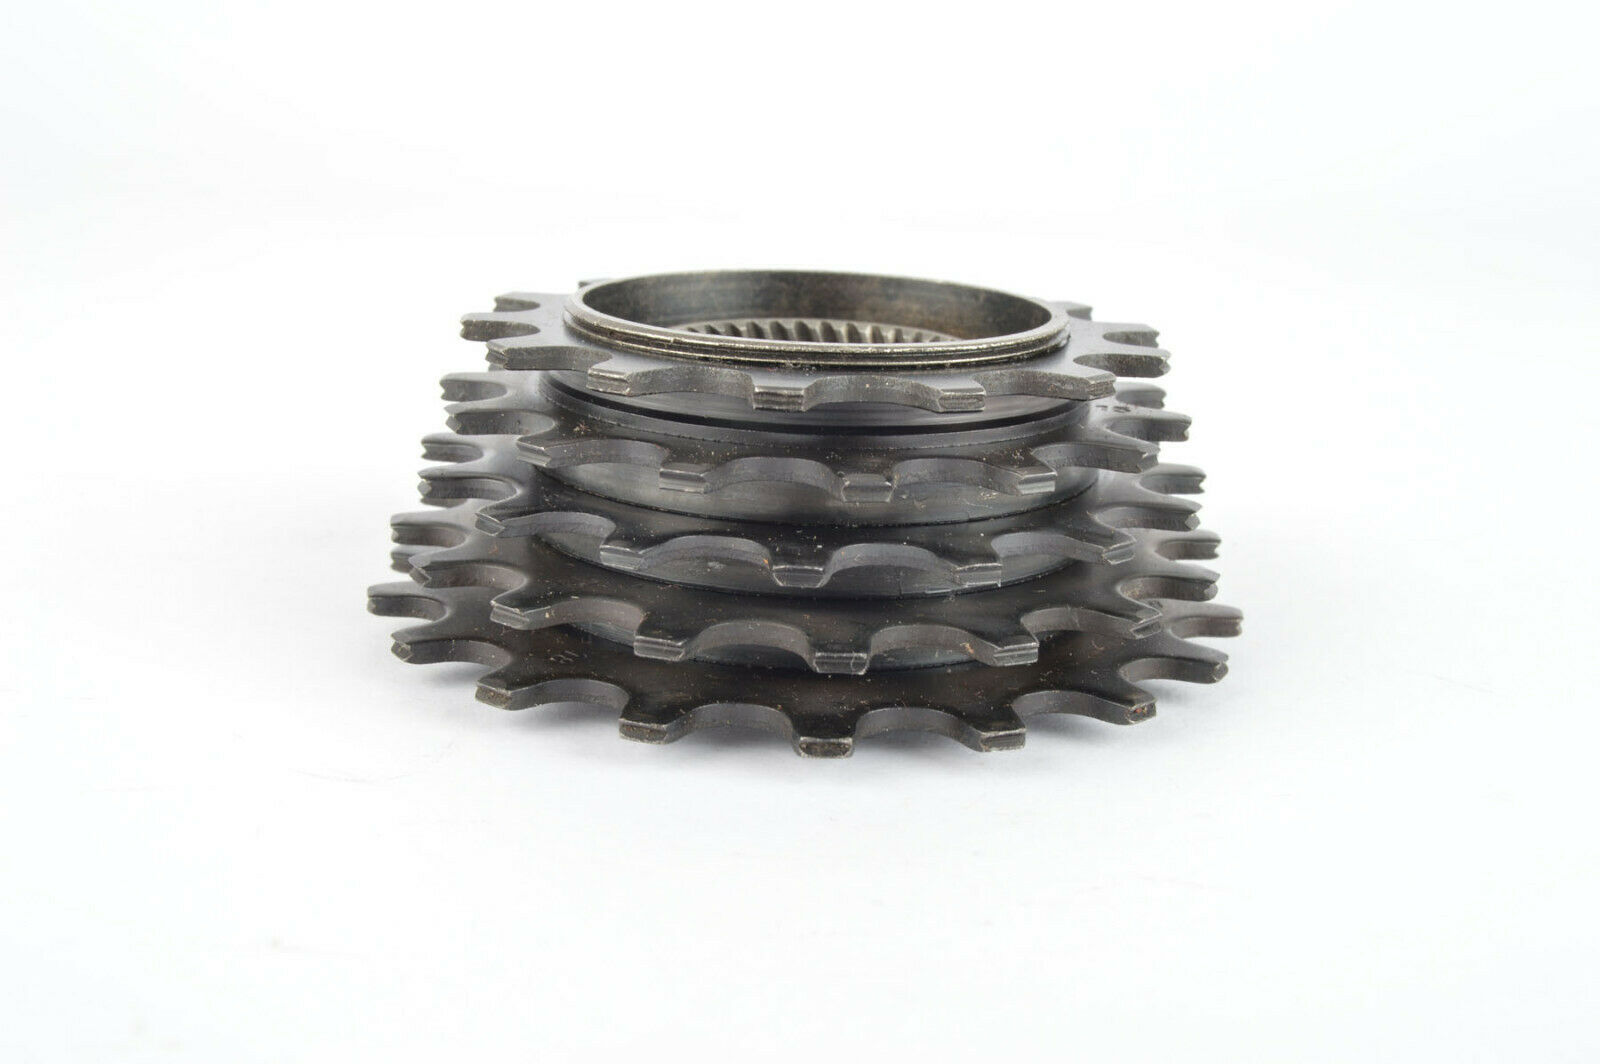 New Maillard helicomatic 5-Speed Freewheel with with with 14-18 teeth from the 1980s nos 6c182e